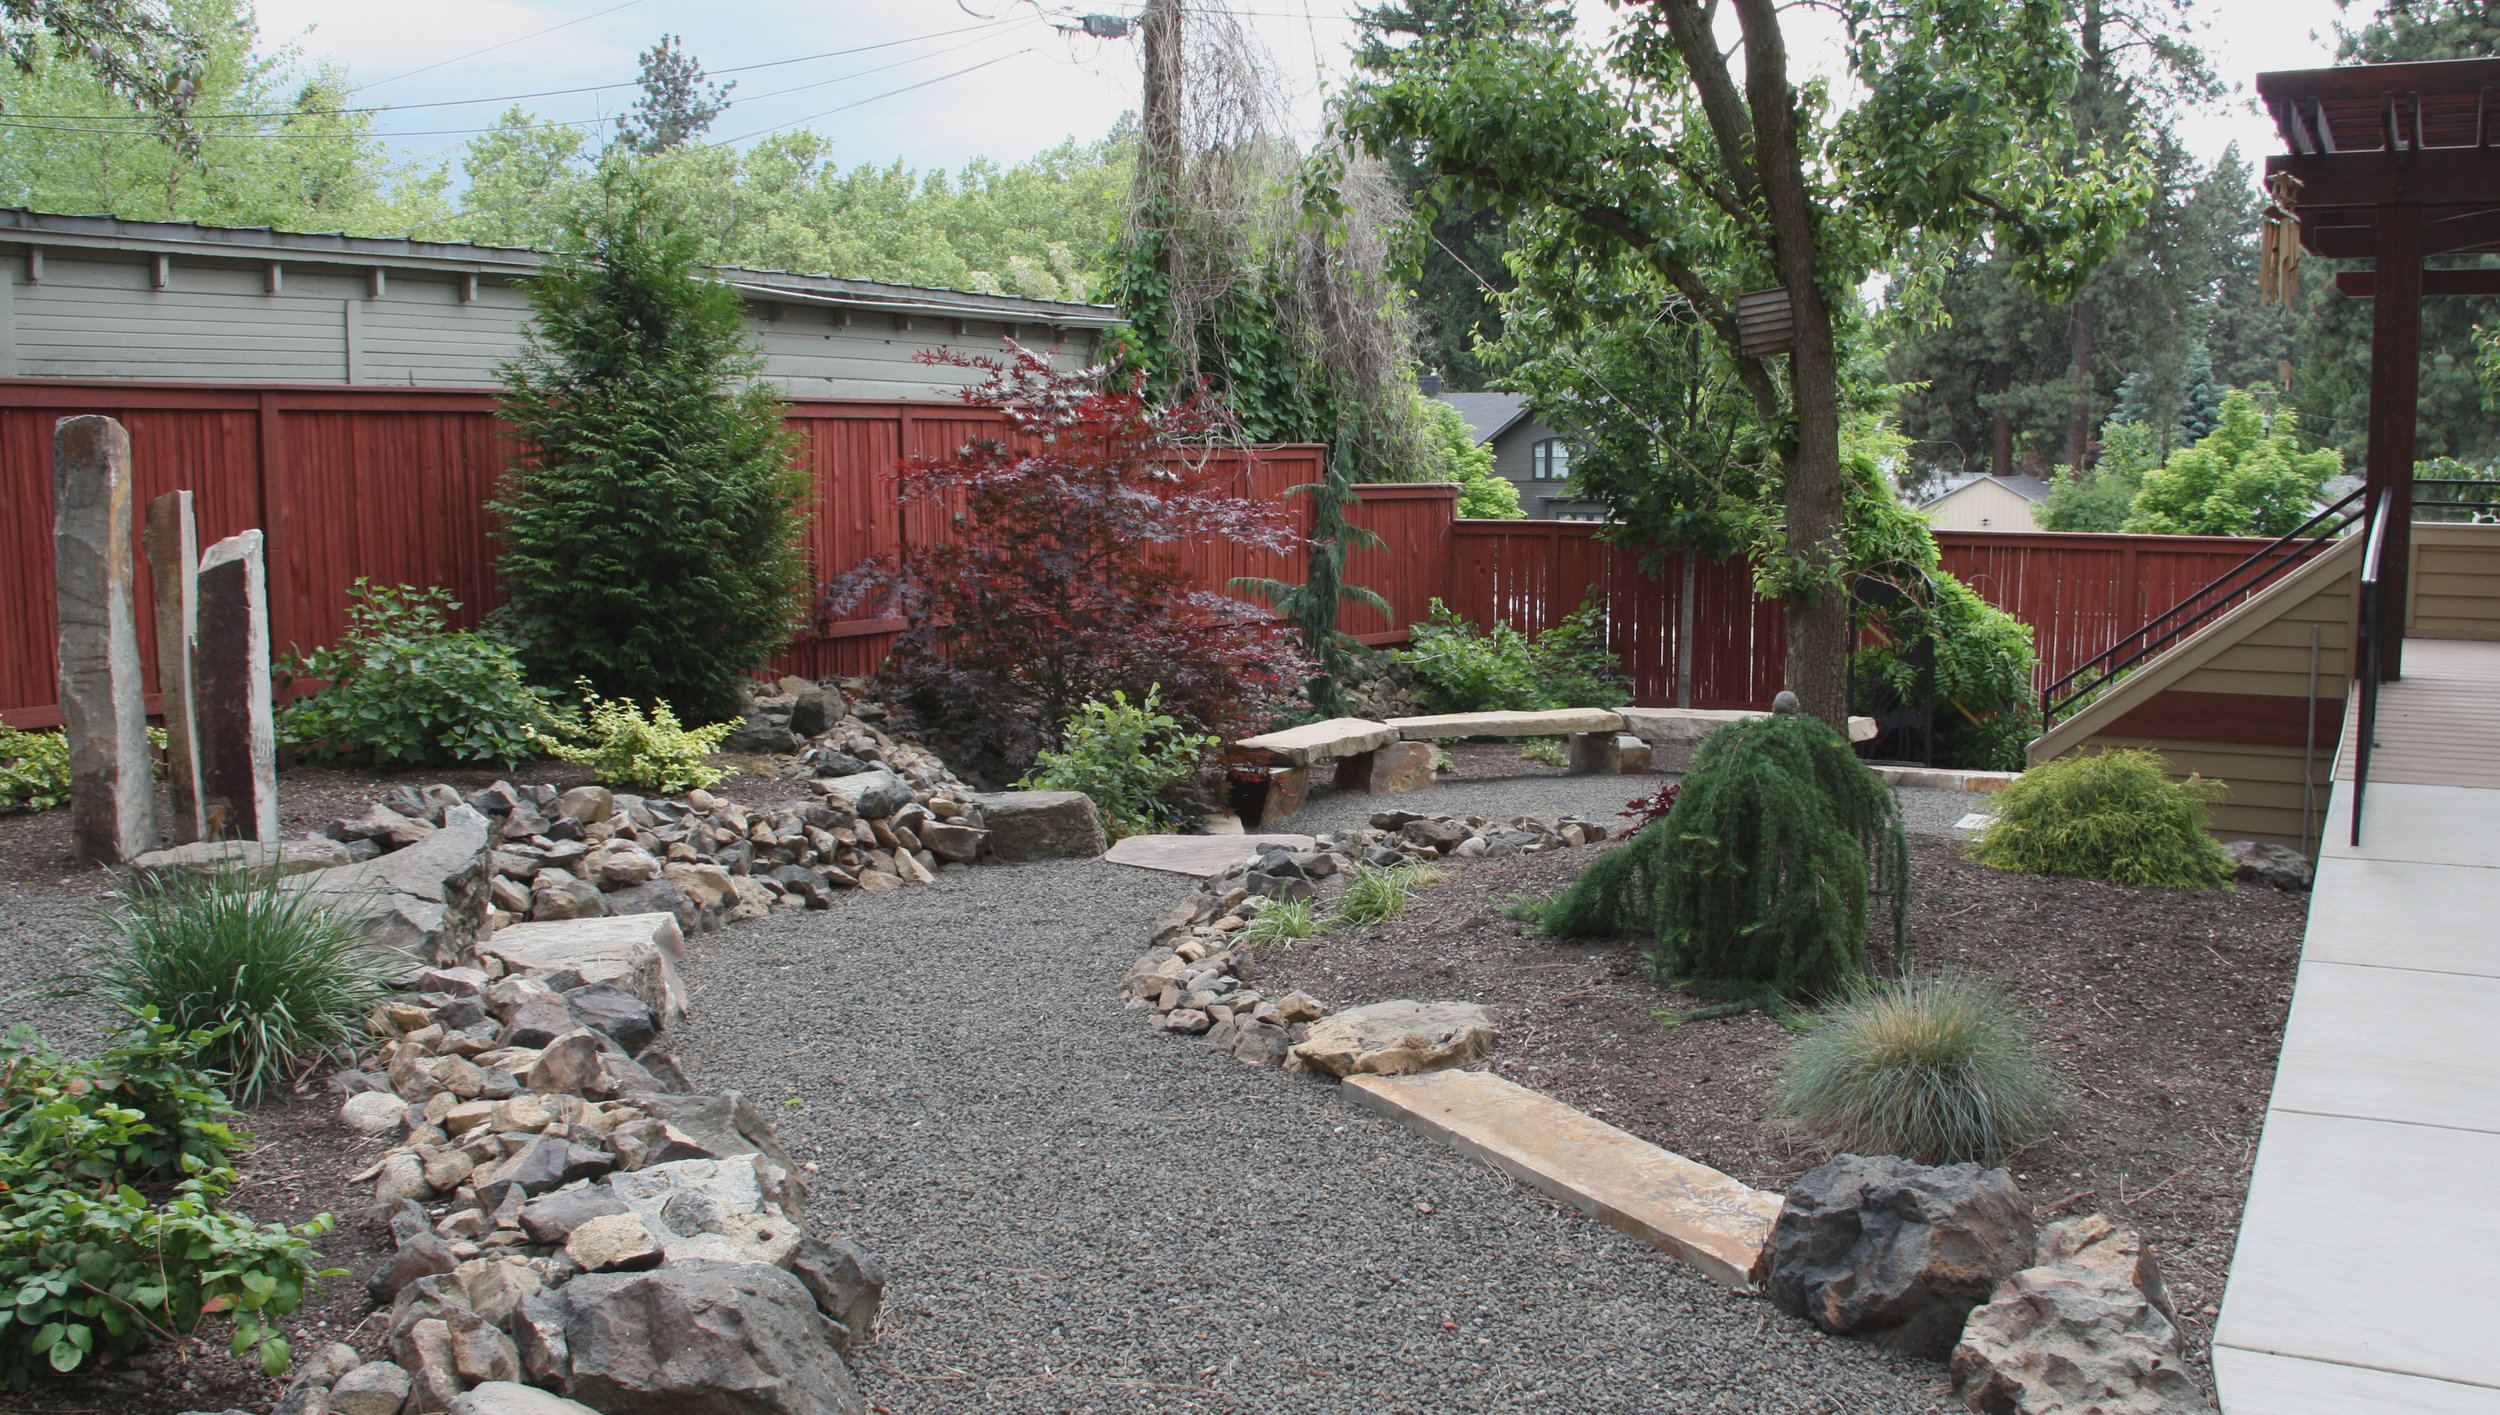 Native stone harvested during the landscape construction can be unsuitable around lawns.